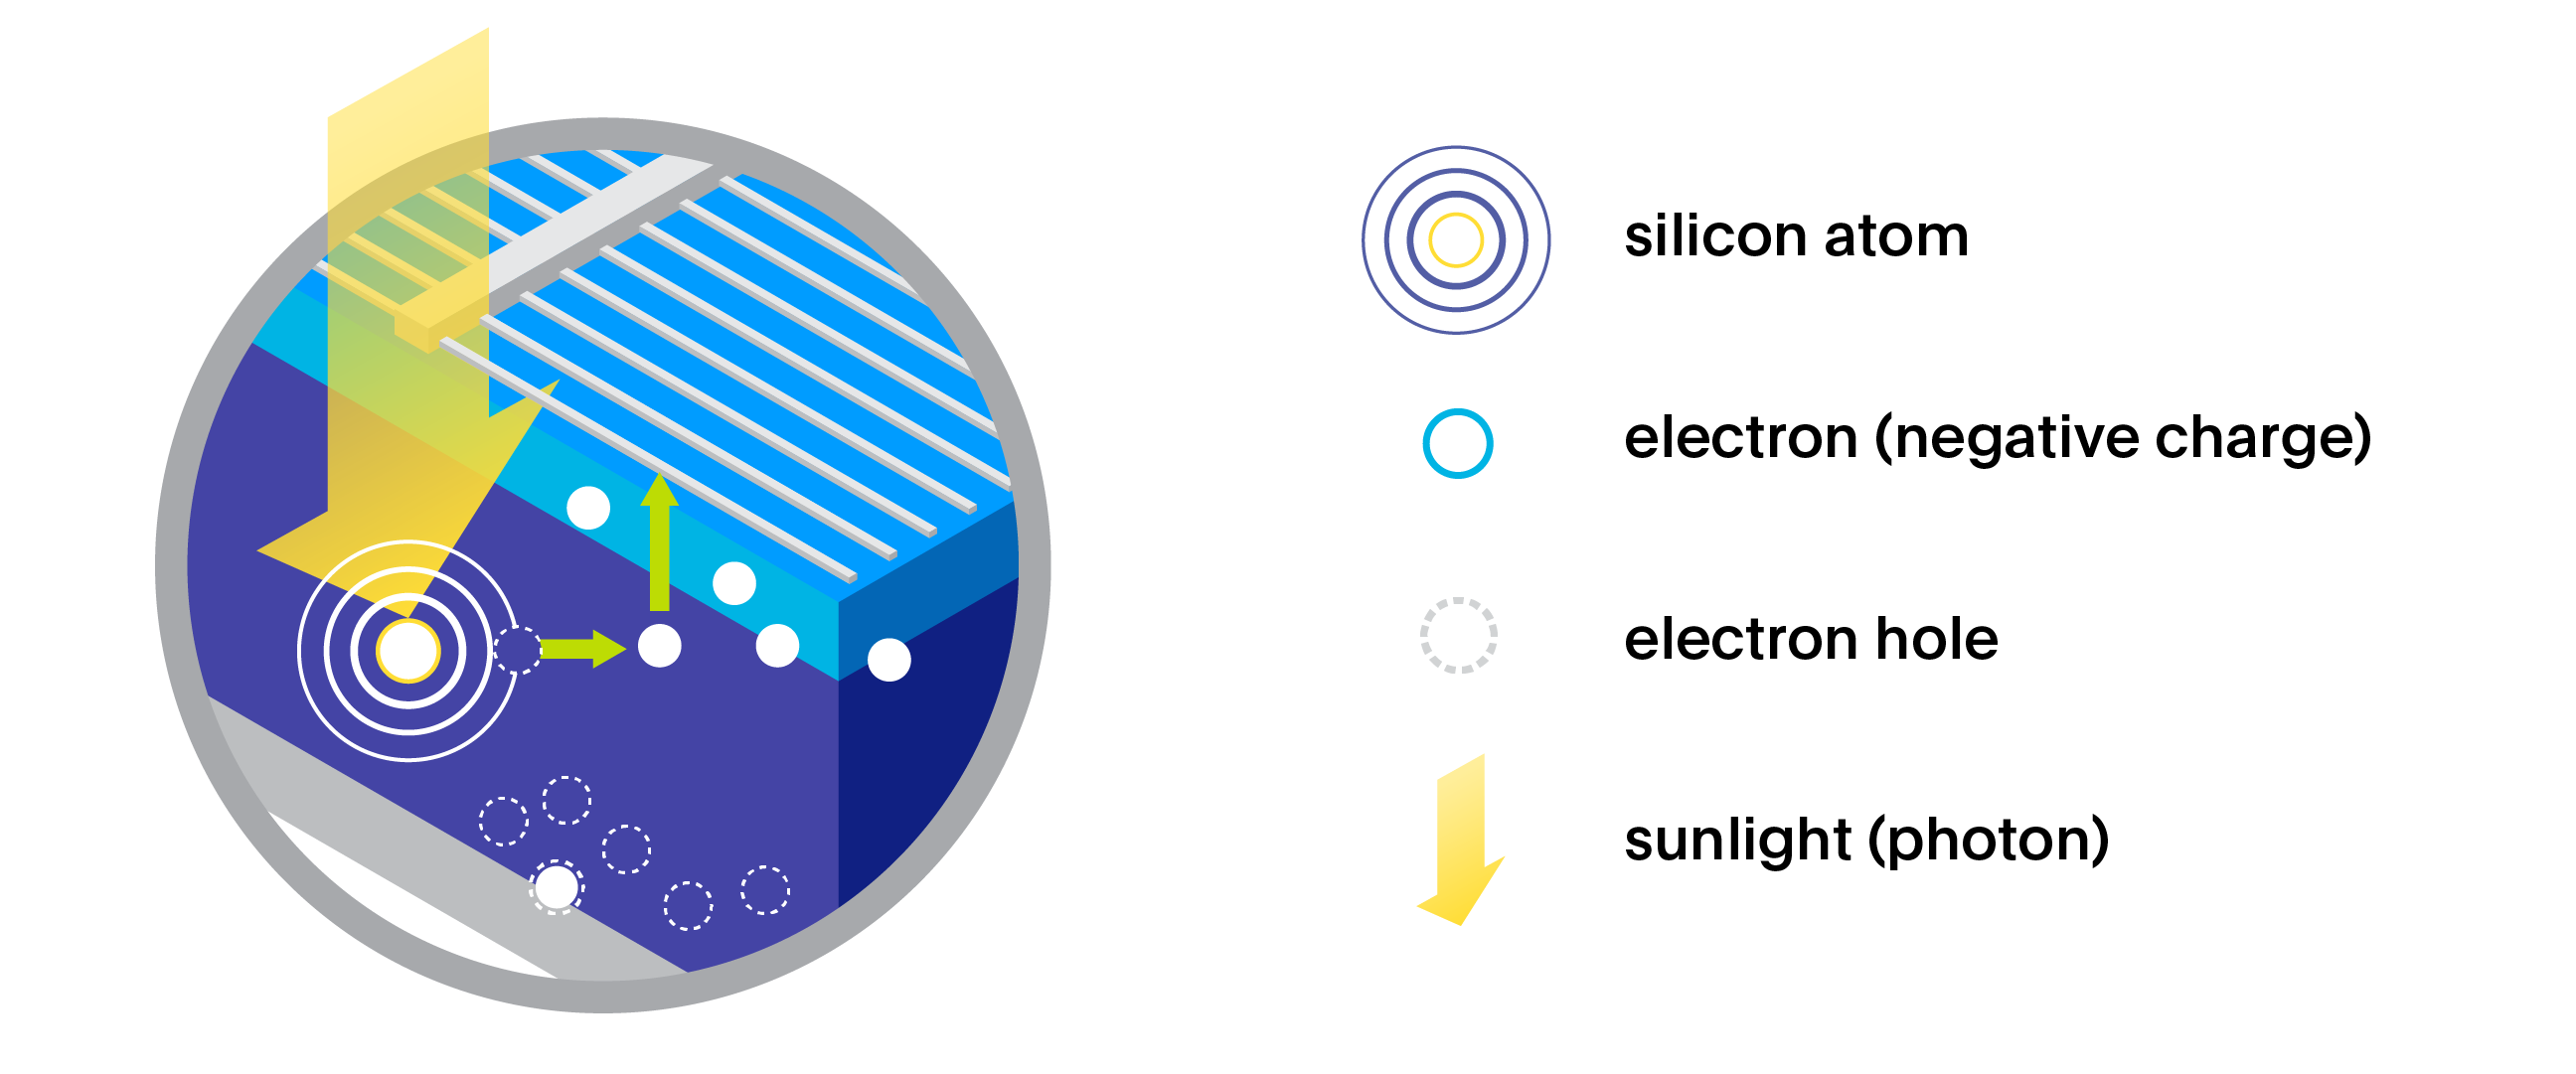 Closeup diagram of a solar cell showing electrons and electron holes created by the absorption of energy from sunlight. A silicon atom is depicted absorbing sunlight, and the separation of electrical charges within the cell.